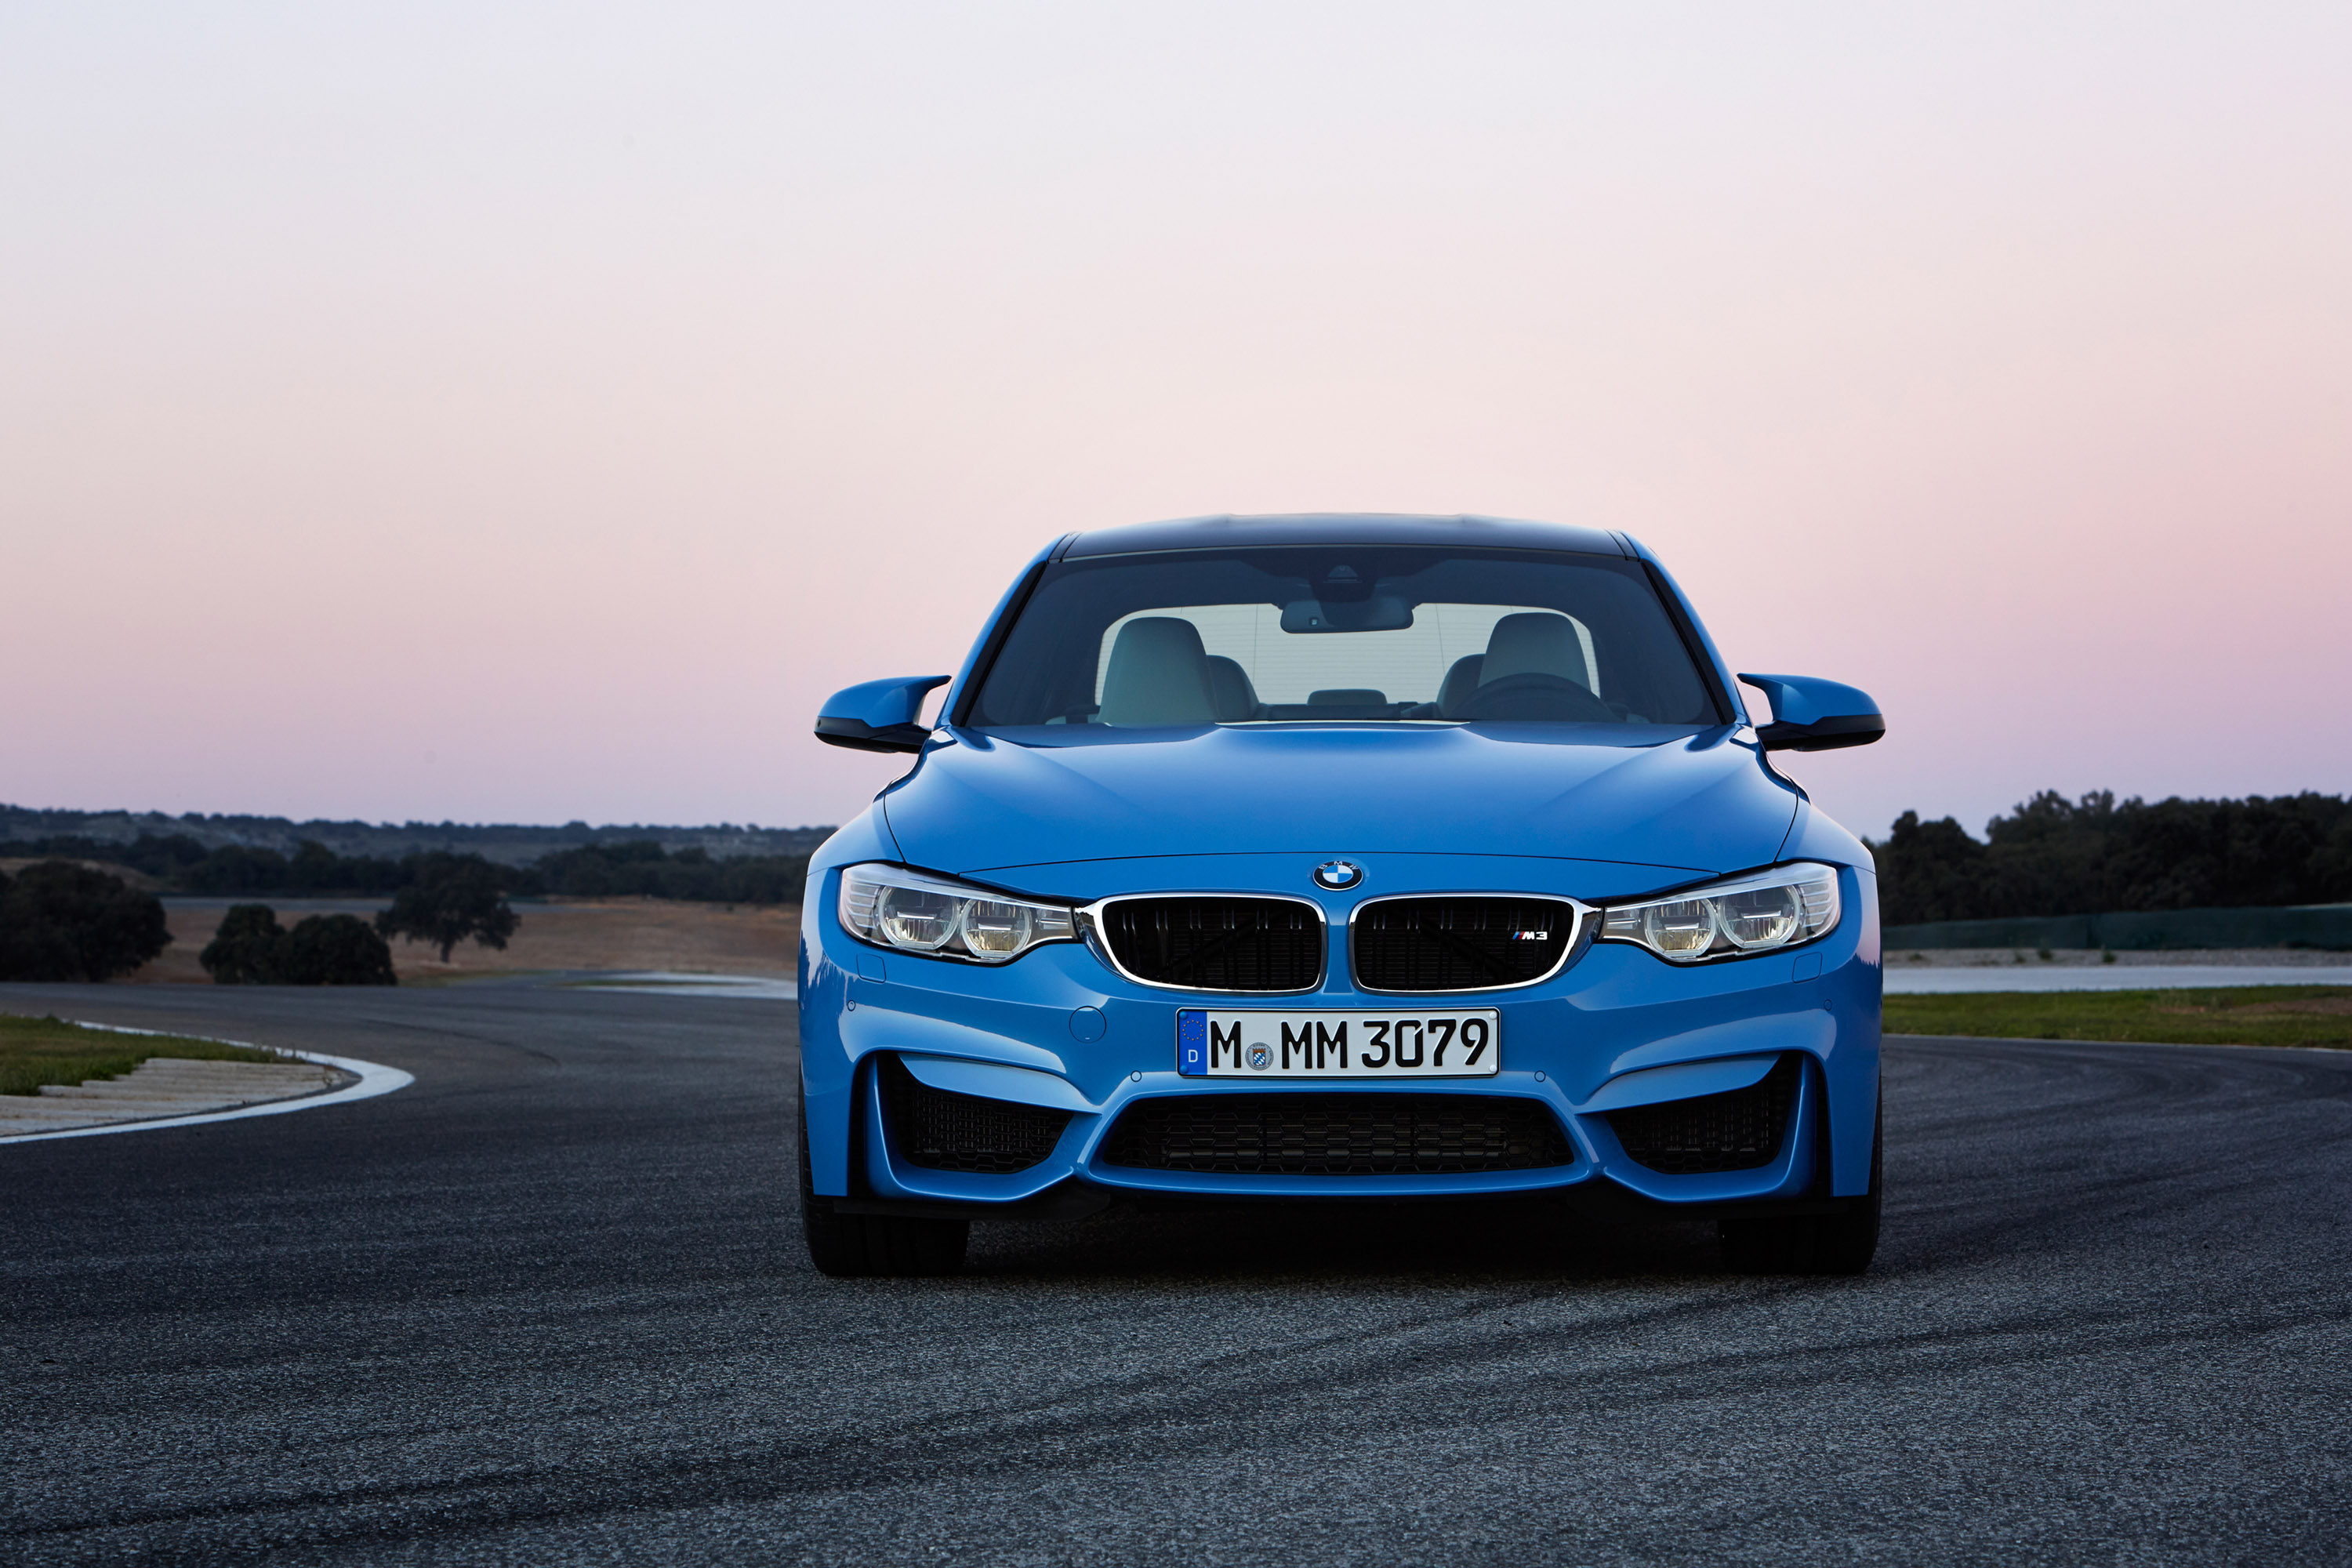 M4 Sport Bmw >> 2014 BMW F80 M3 Sedan vs E30 M3 DTM - Hockenheim [video]